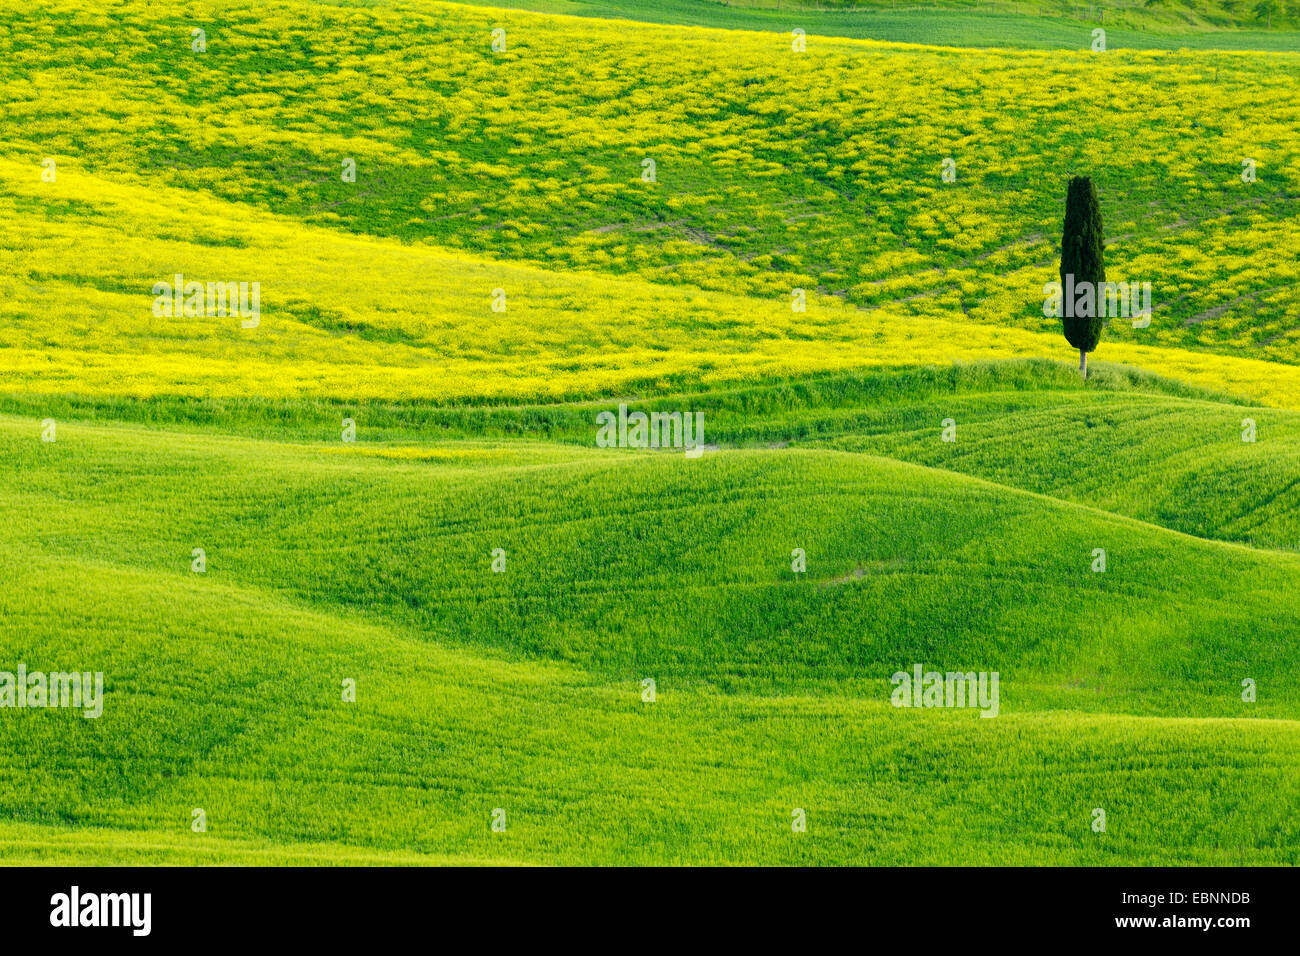 Cyprès (Cupressus sempervirens), vert et vallonné Farmland with Cypress, Val d' Orcia, San Quirico Photo Stock